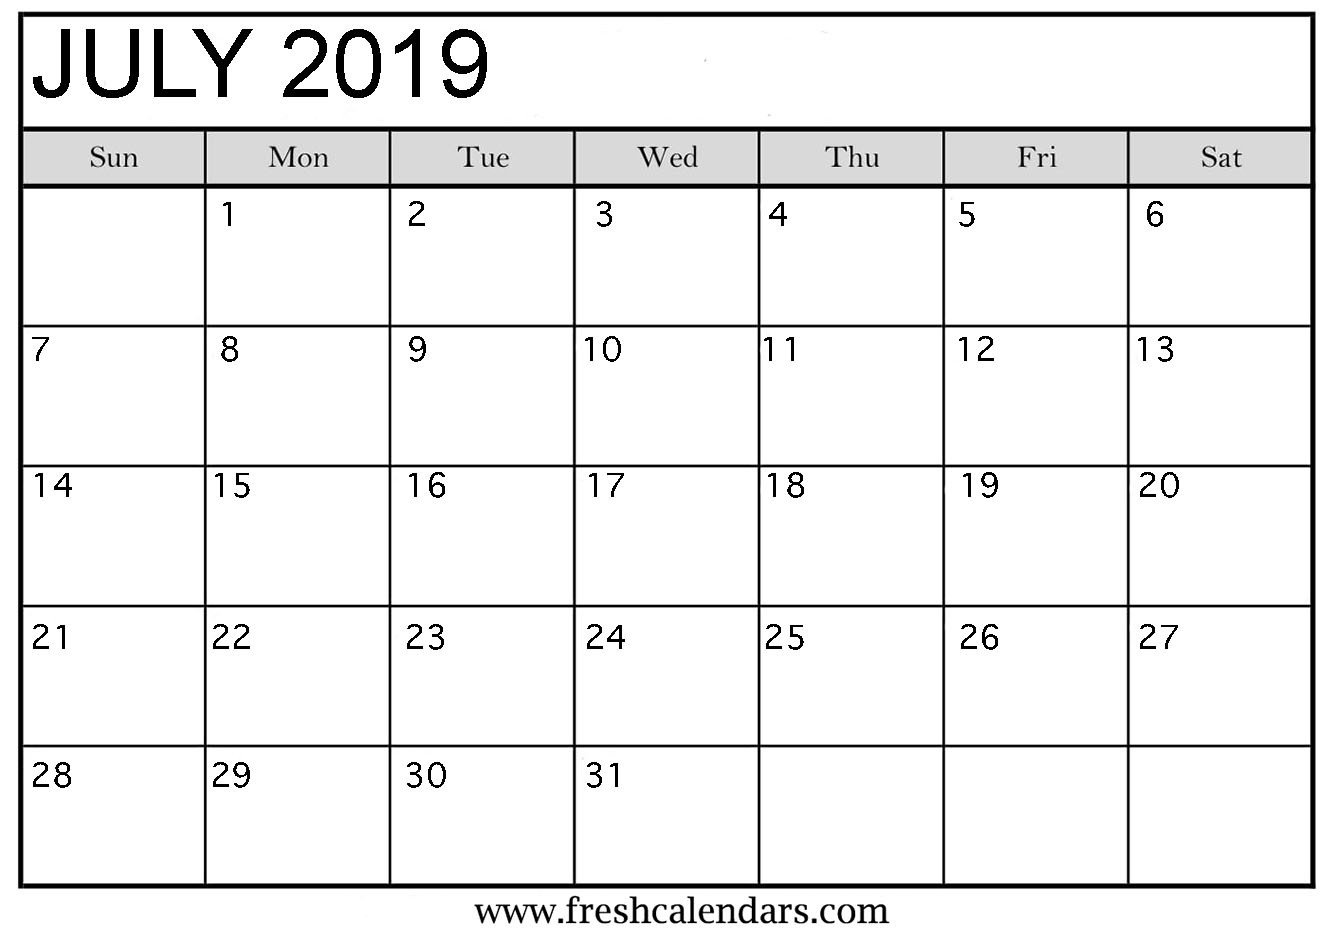 Calendar Template for Word July 2019 Calendar Printable Fresh Calendars